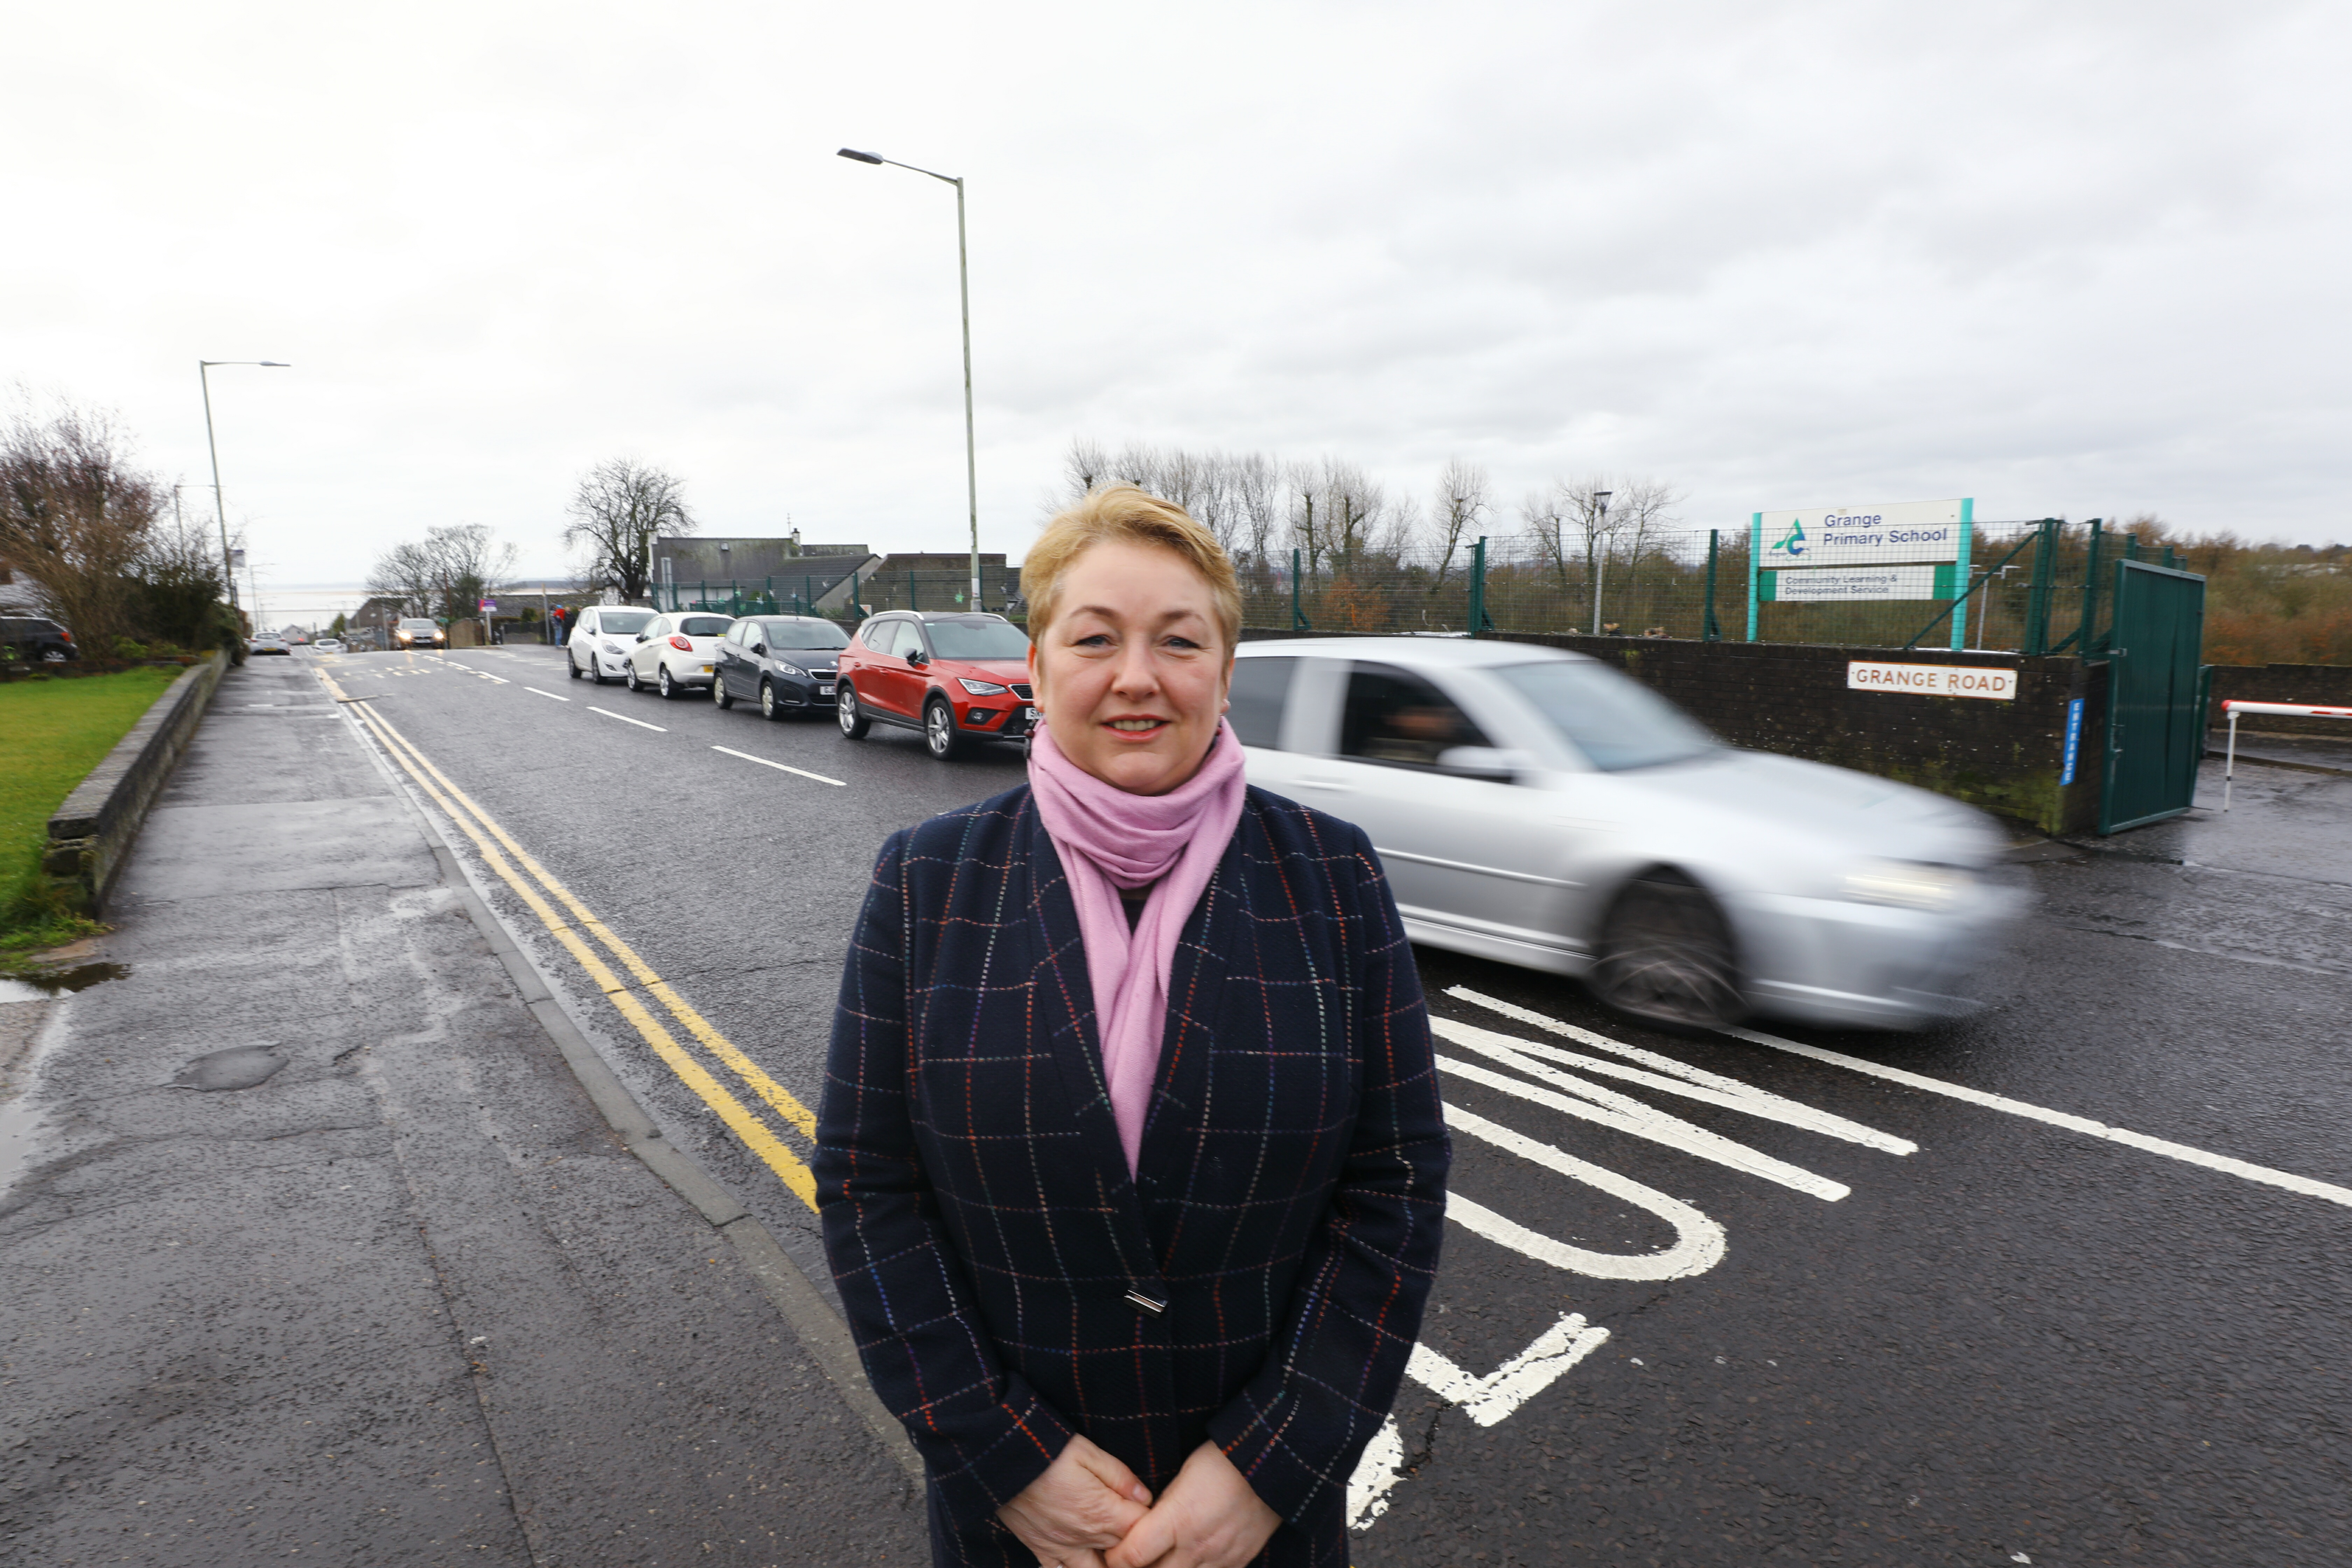 Angus Councillor Beth Whiteside outside Grange Primary School in Monifieth.